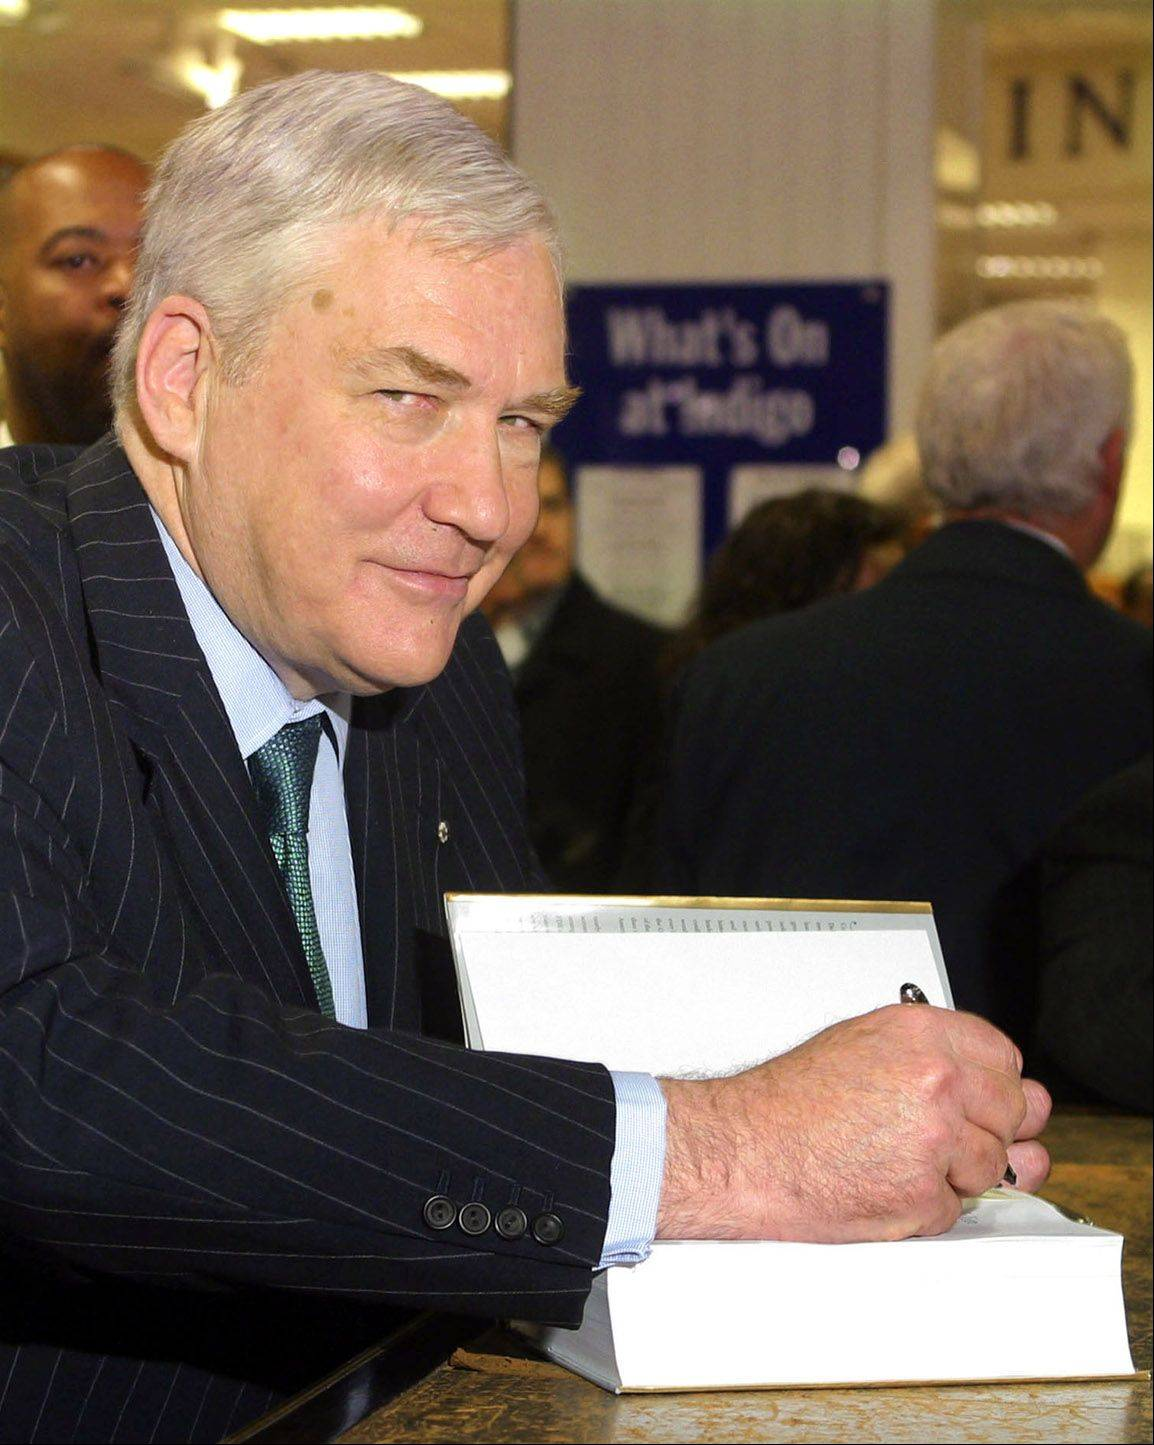 "Bloomberg News file photoConrad Black, who resigned as CEO of Hollinger International Inc., signs a copy of his book ""Franklin Delano Roosevelt: Champion of Freedom"" at a bookstore in Toronto, Canada, in 2003."